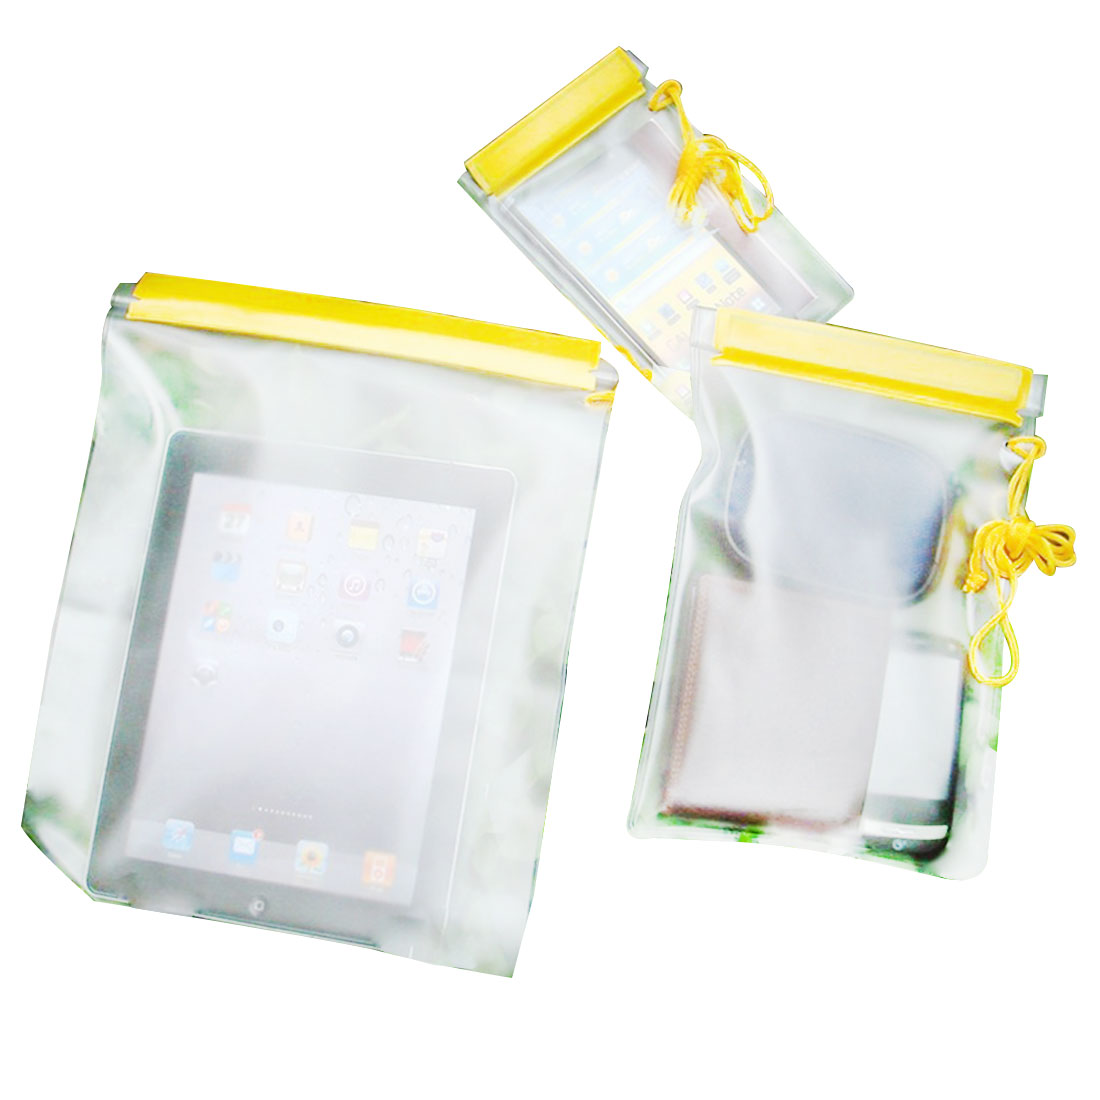 3Pcs Waterproof Dry Bag Outdoor Clear Case Canoe Floating Boating Kayaking Camping Water-Resistant Bags For Phone Pouch